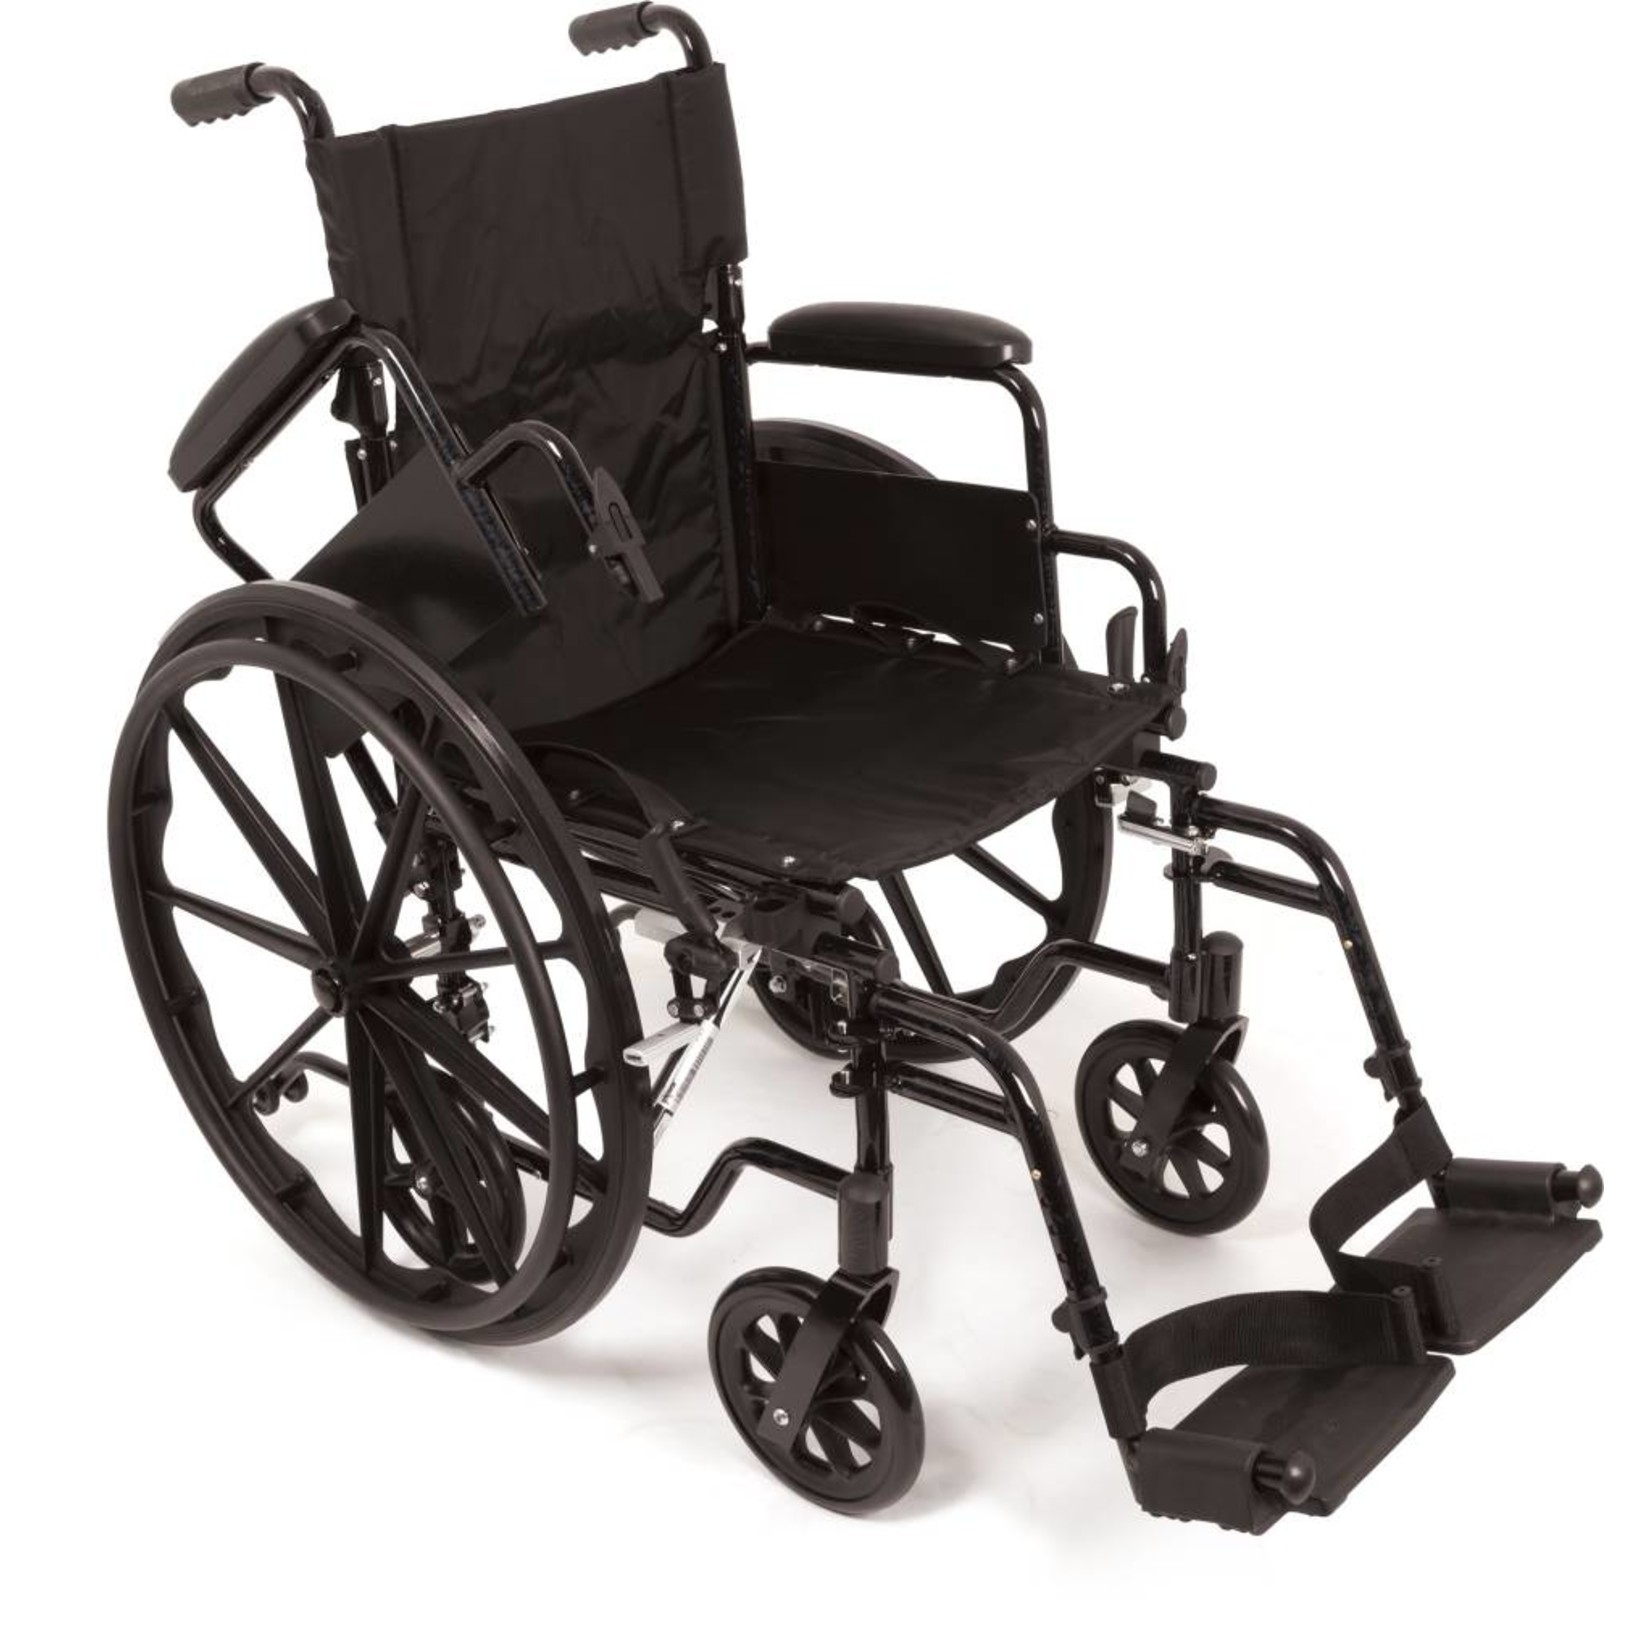 Wheelchair Combo - Rental Reservation in Eastern Palm Beach County